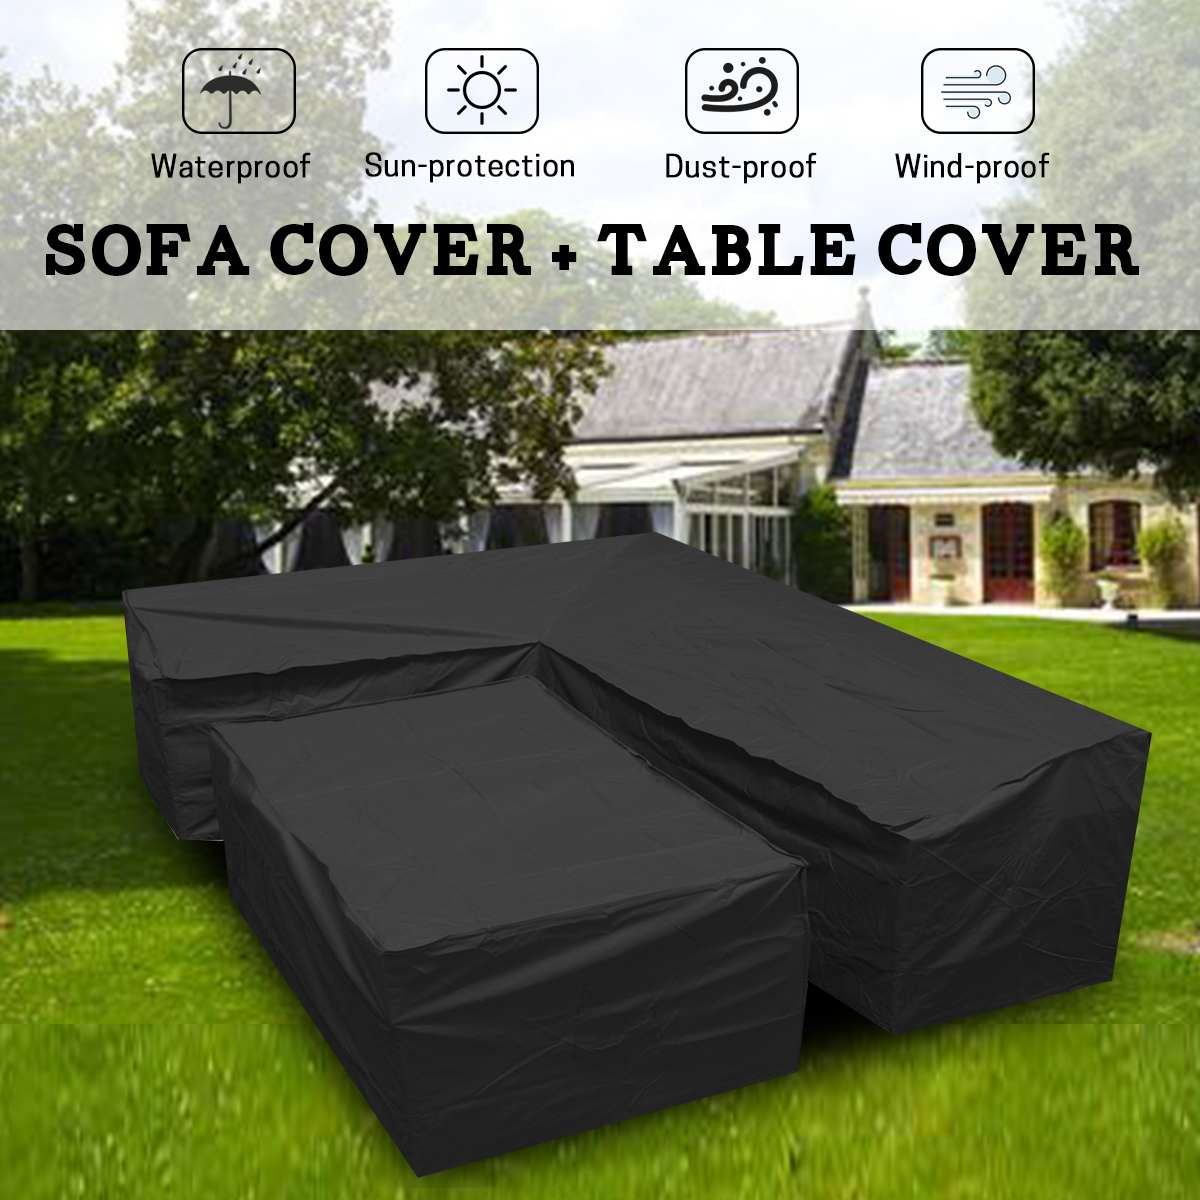 100% Quality Home Sale Waterproof Dust-proof Furniture Chair Sofa Cover Garden Patio Outdoor Rain Snow Dustproof Covers Household Merchandises Dust Covers